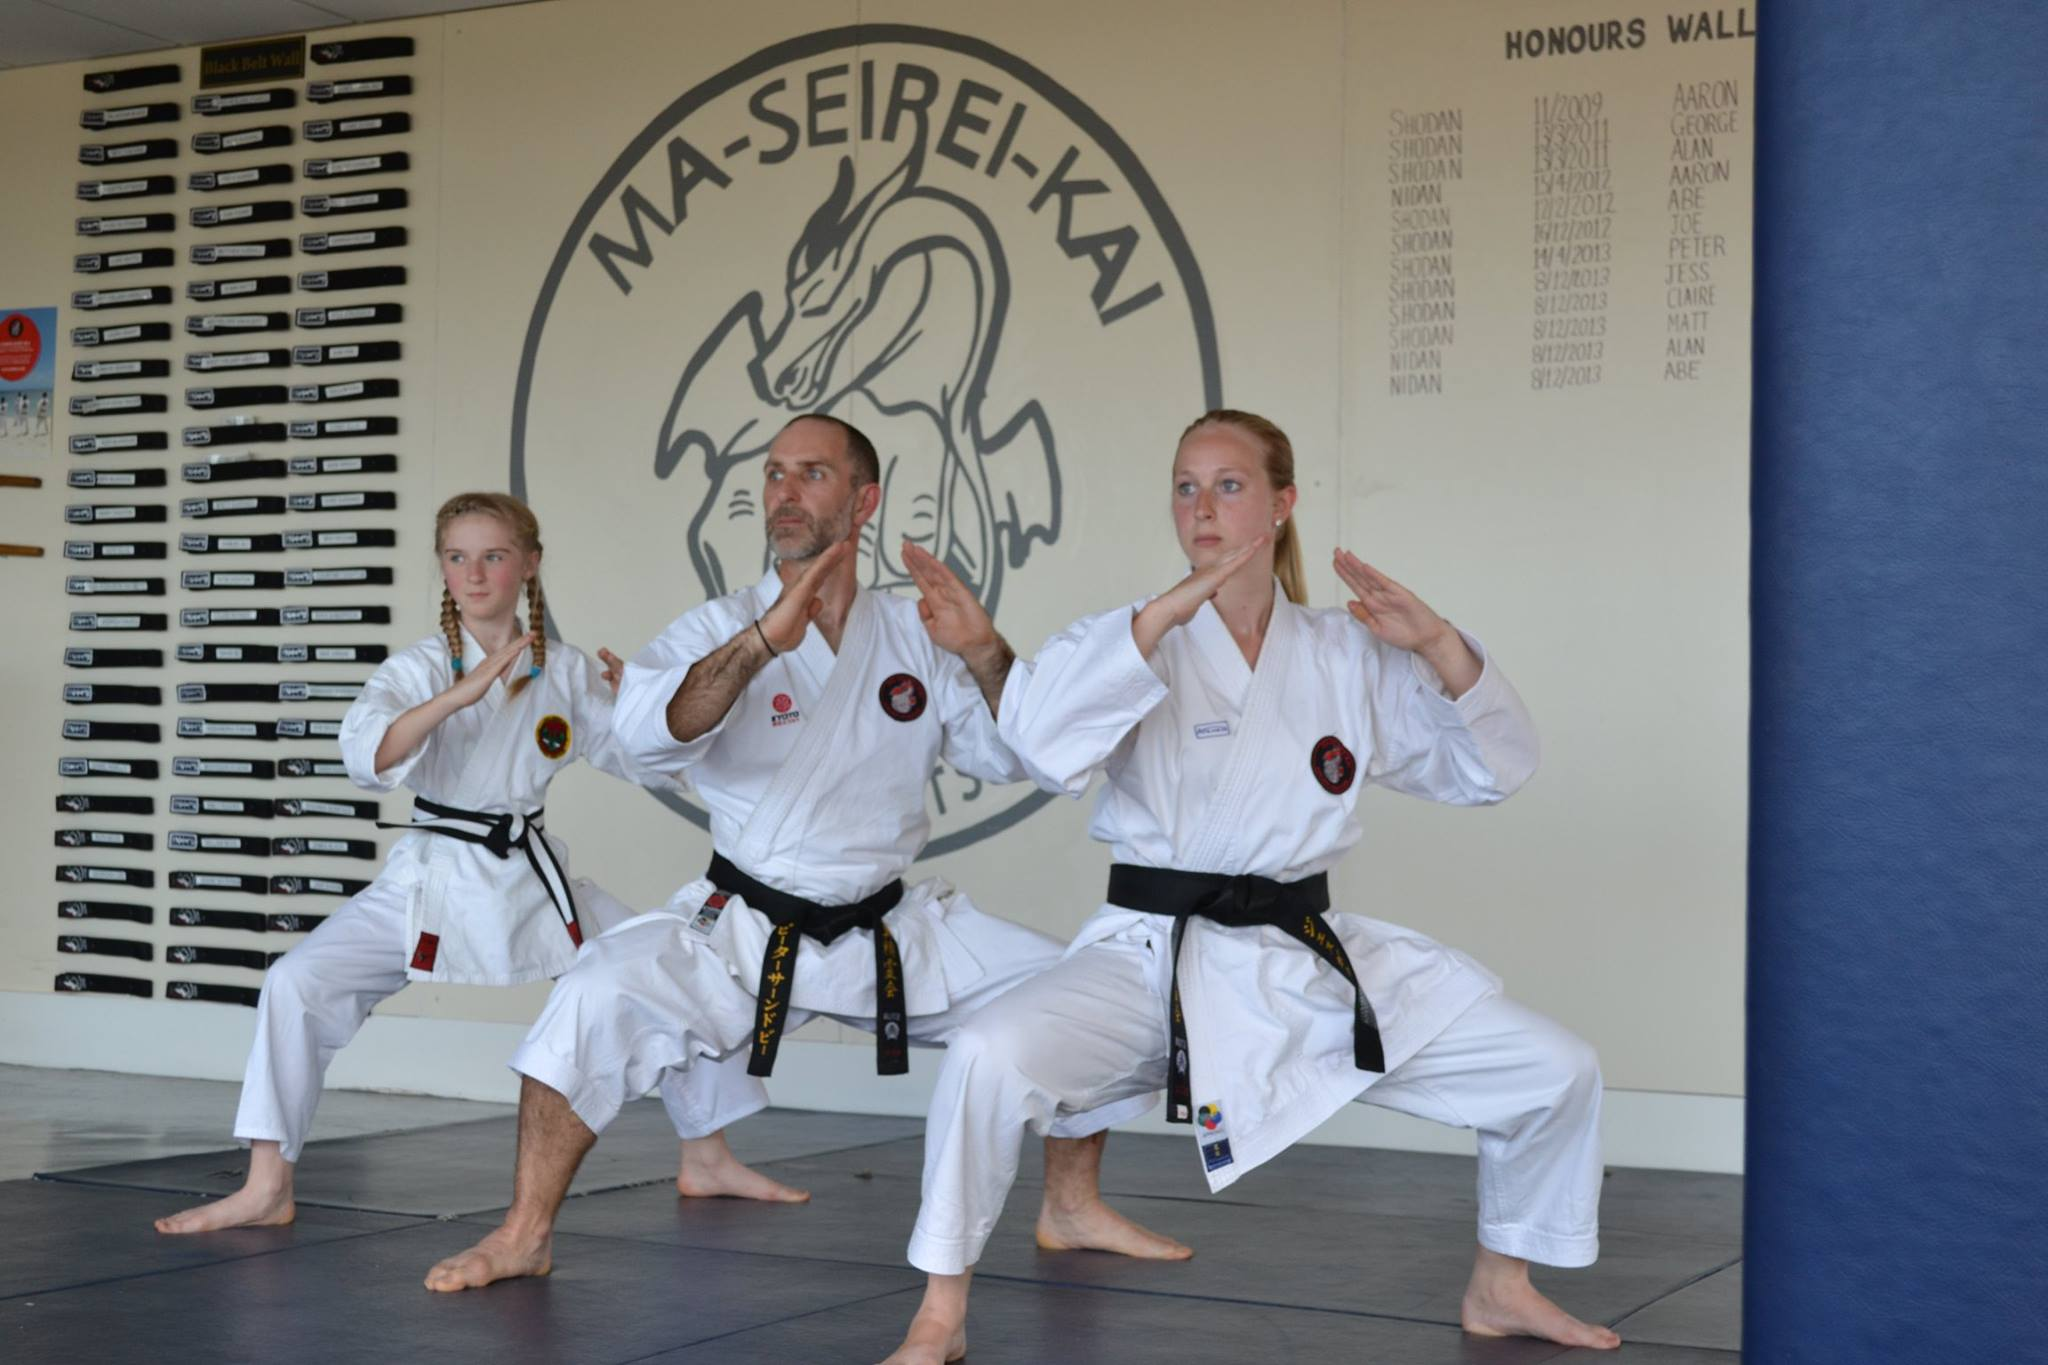 Sumo Stance, young, male and female